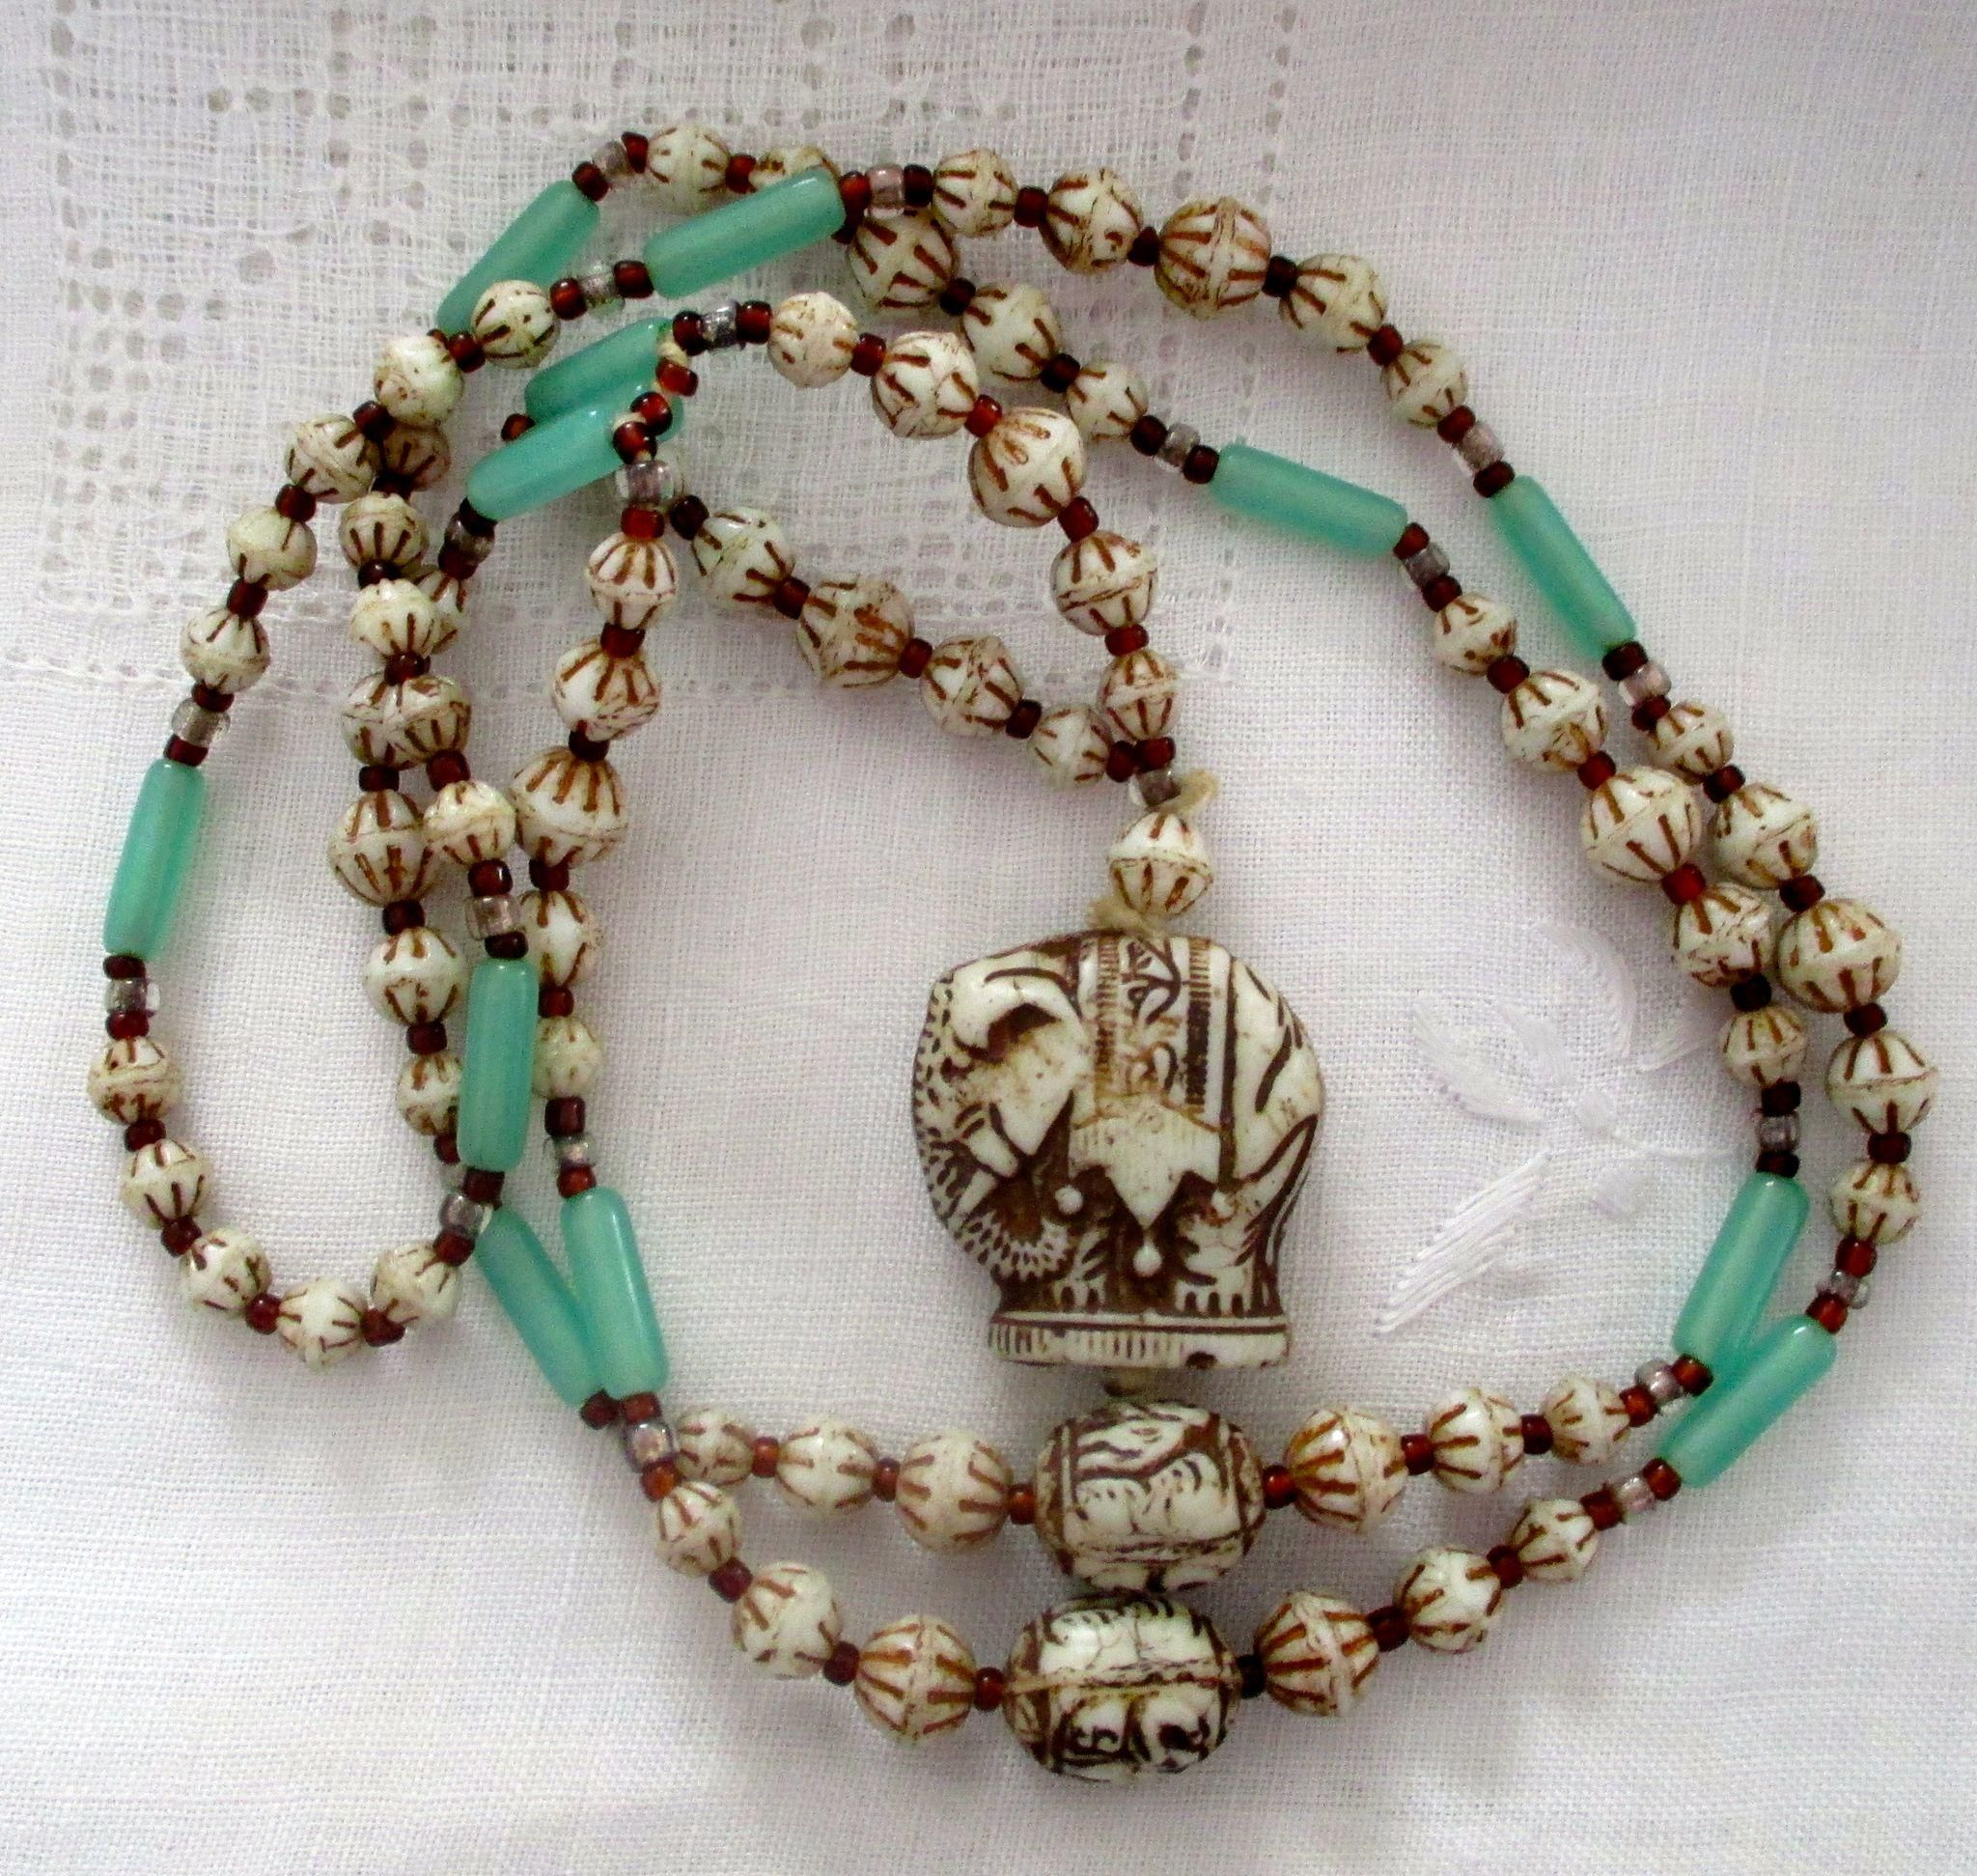 Vintage Carved Bone Bead Necklace Painted Beads Jade Bars Carved Elephant Pendant Before 1940s Bone Bead Necklace Beaded Necklace Elephant Pendant